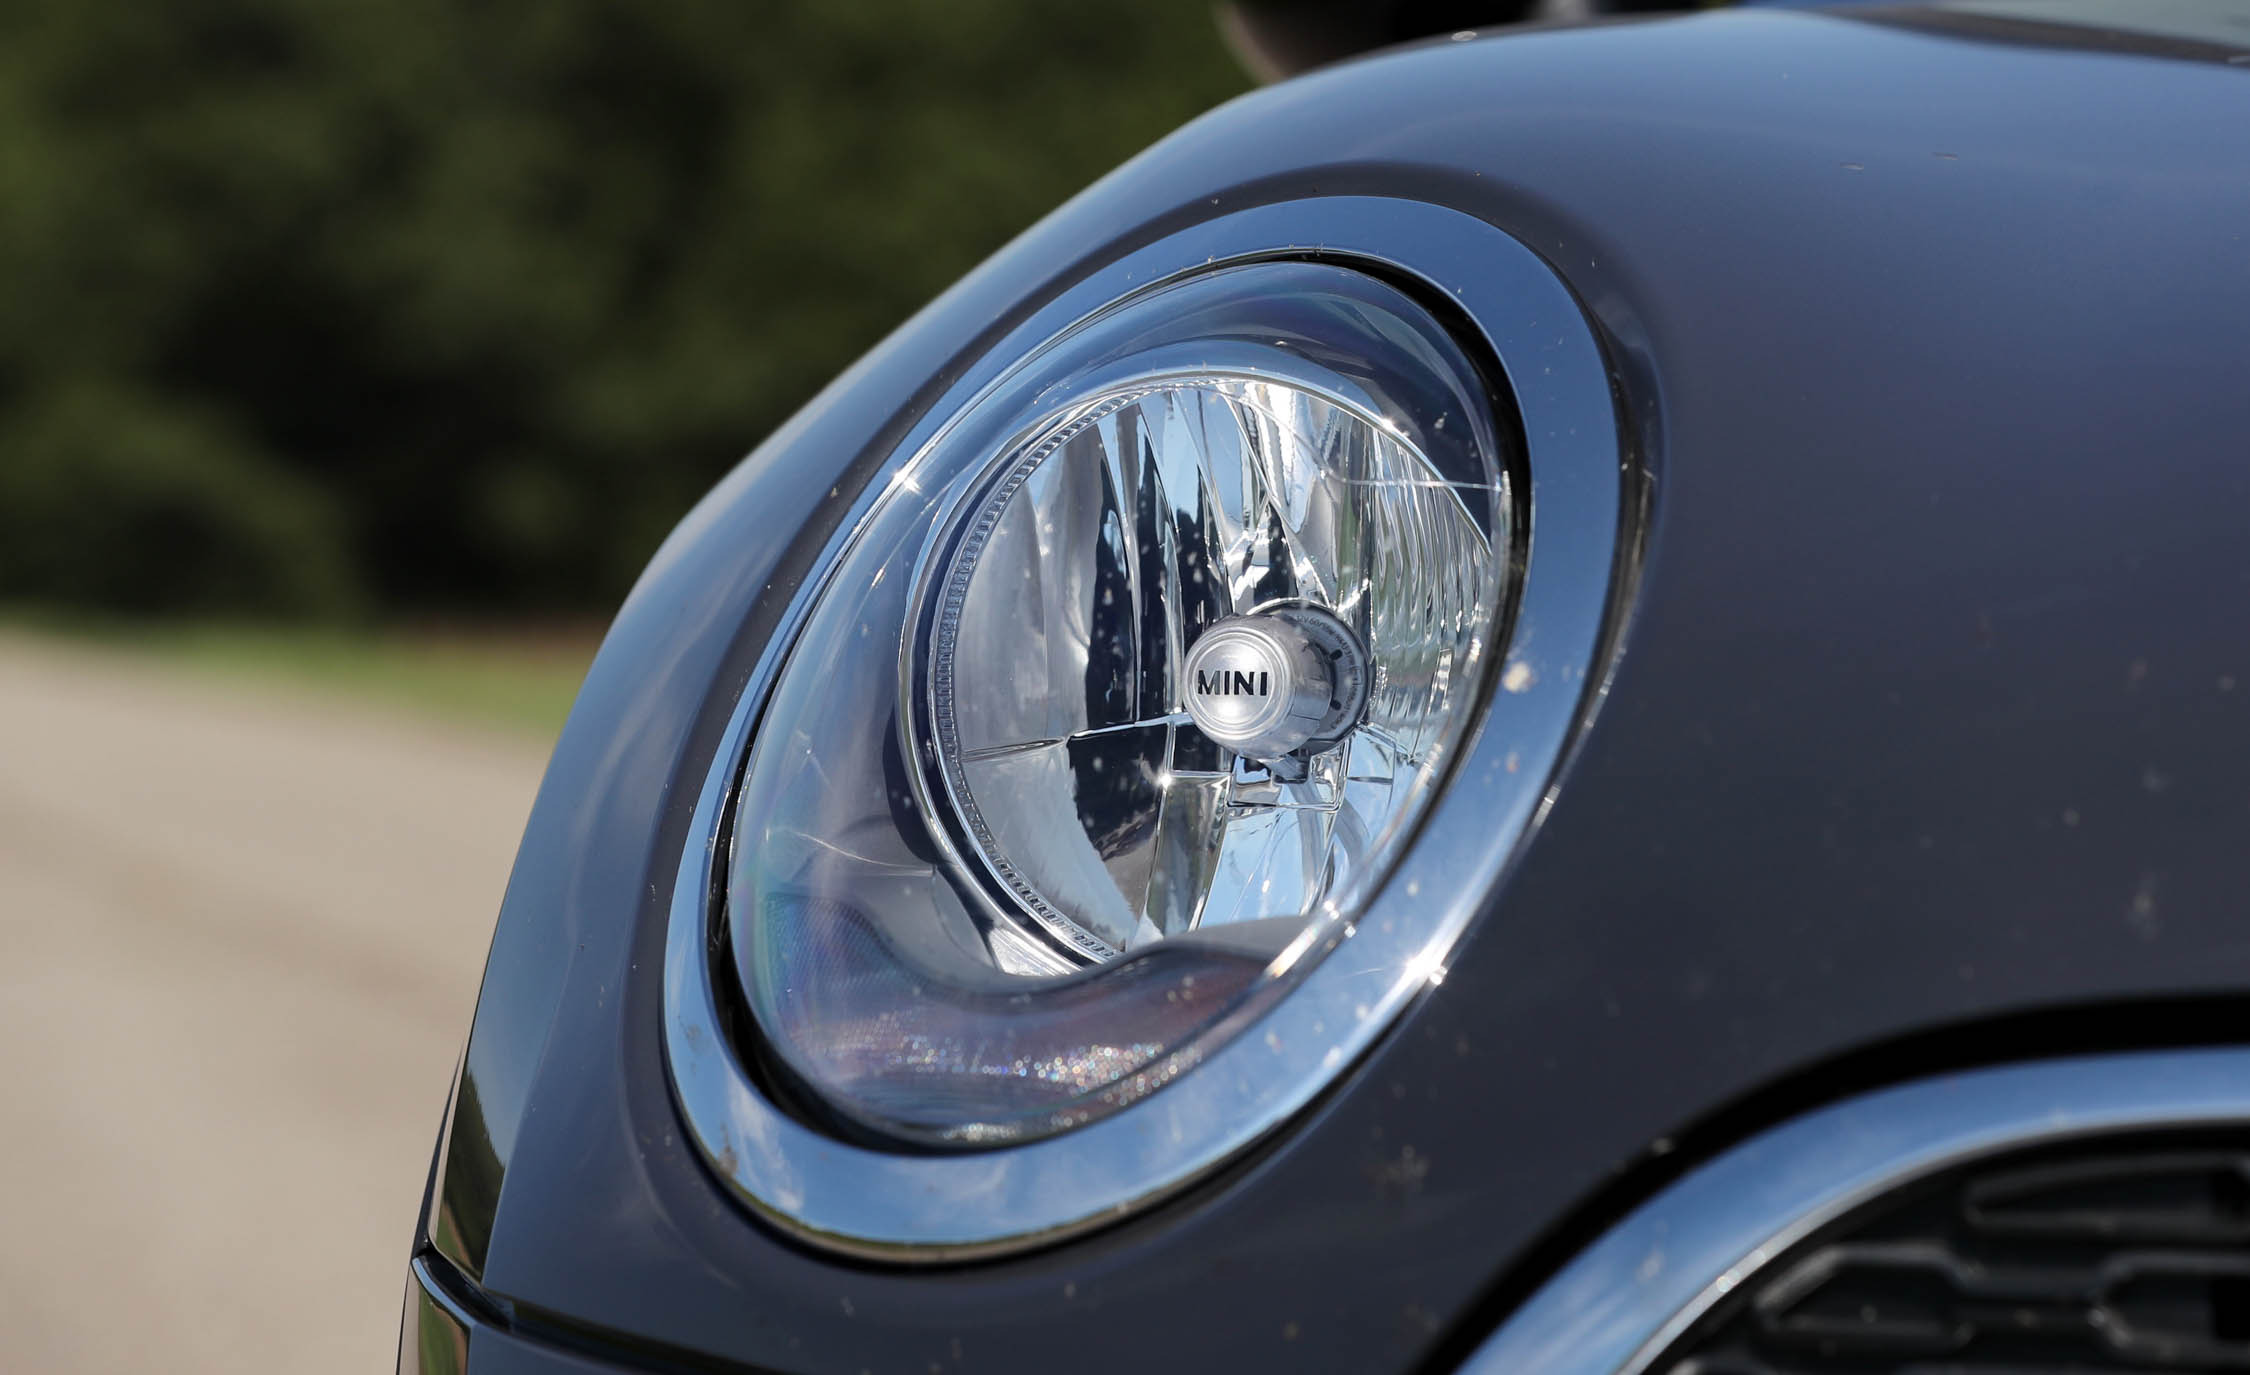 2017 Mini Cooper S ALL4 Clubman Exterior View Headlight (Photo 12 of 29)